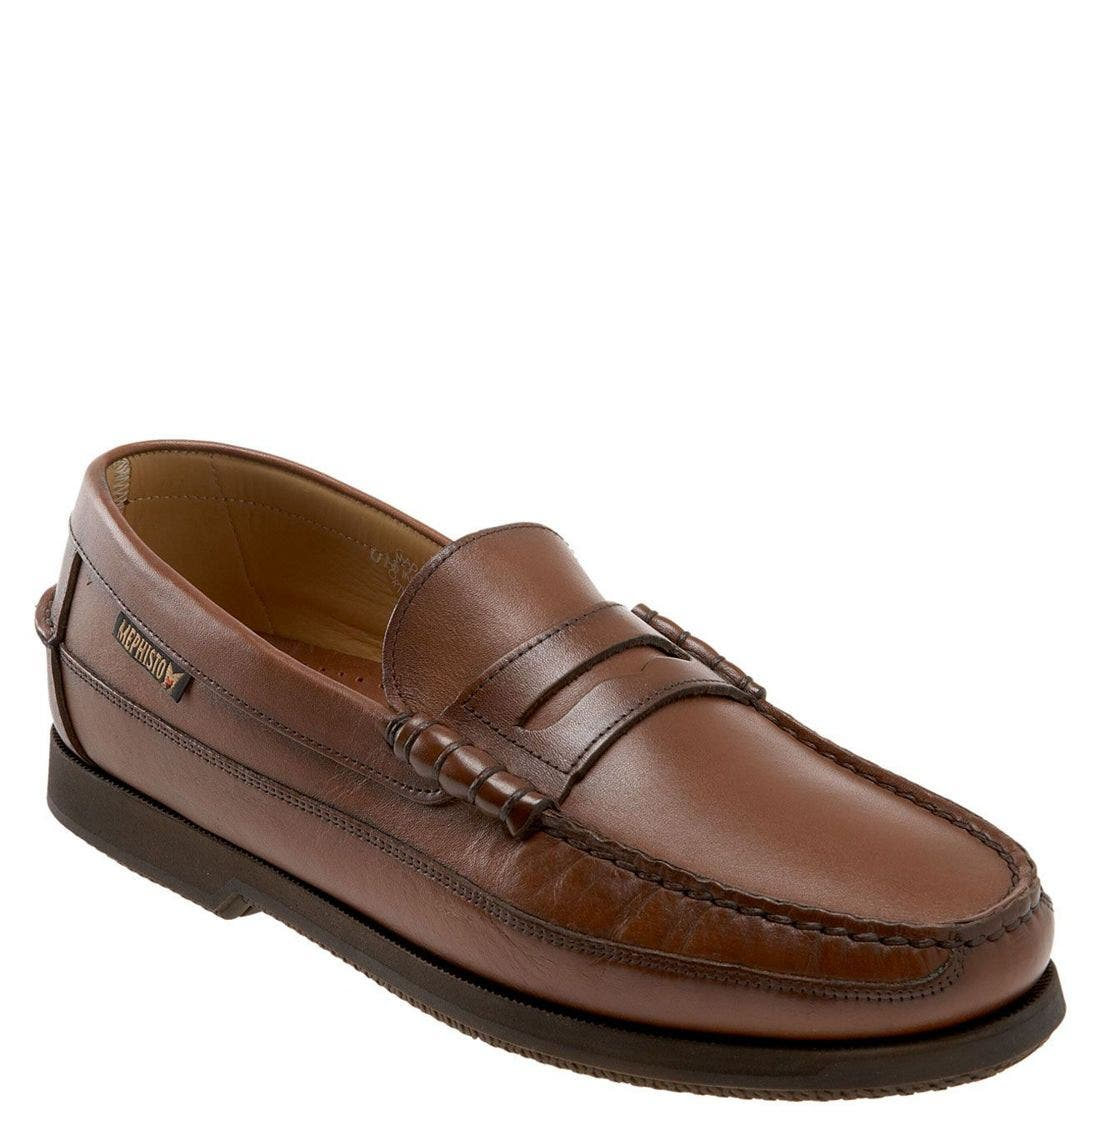 MEPHISTO 'Cap Vert' Penny Loafer, Main, color, Rust Leather